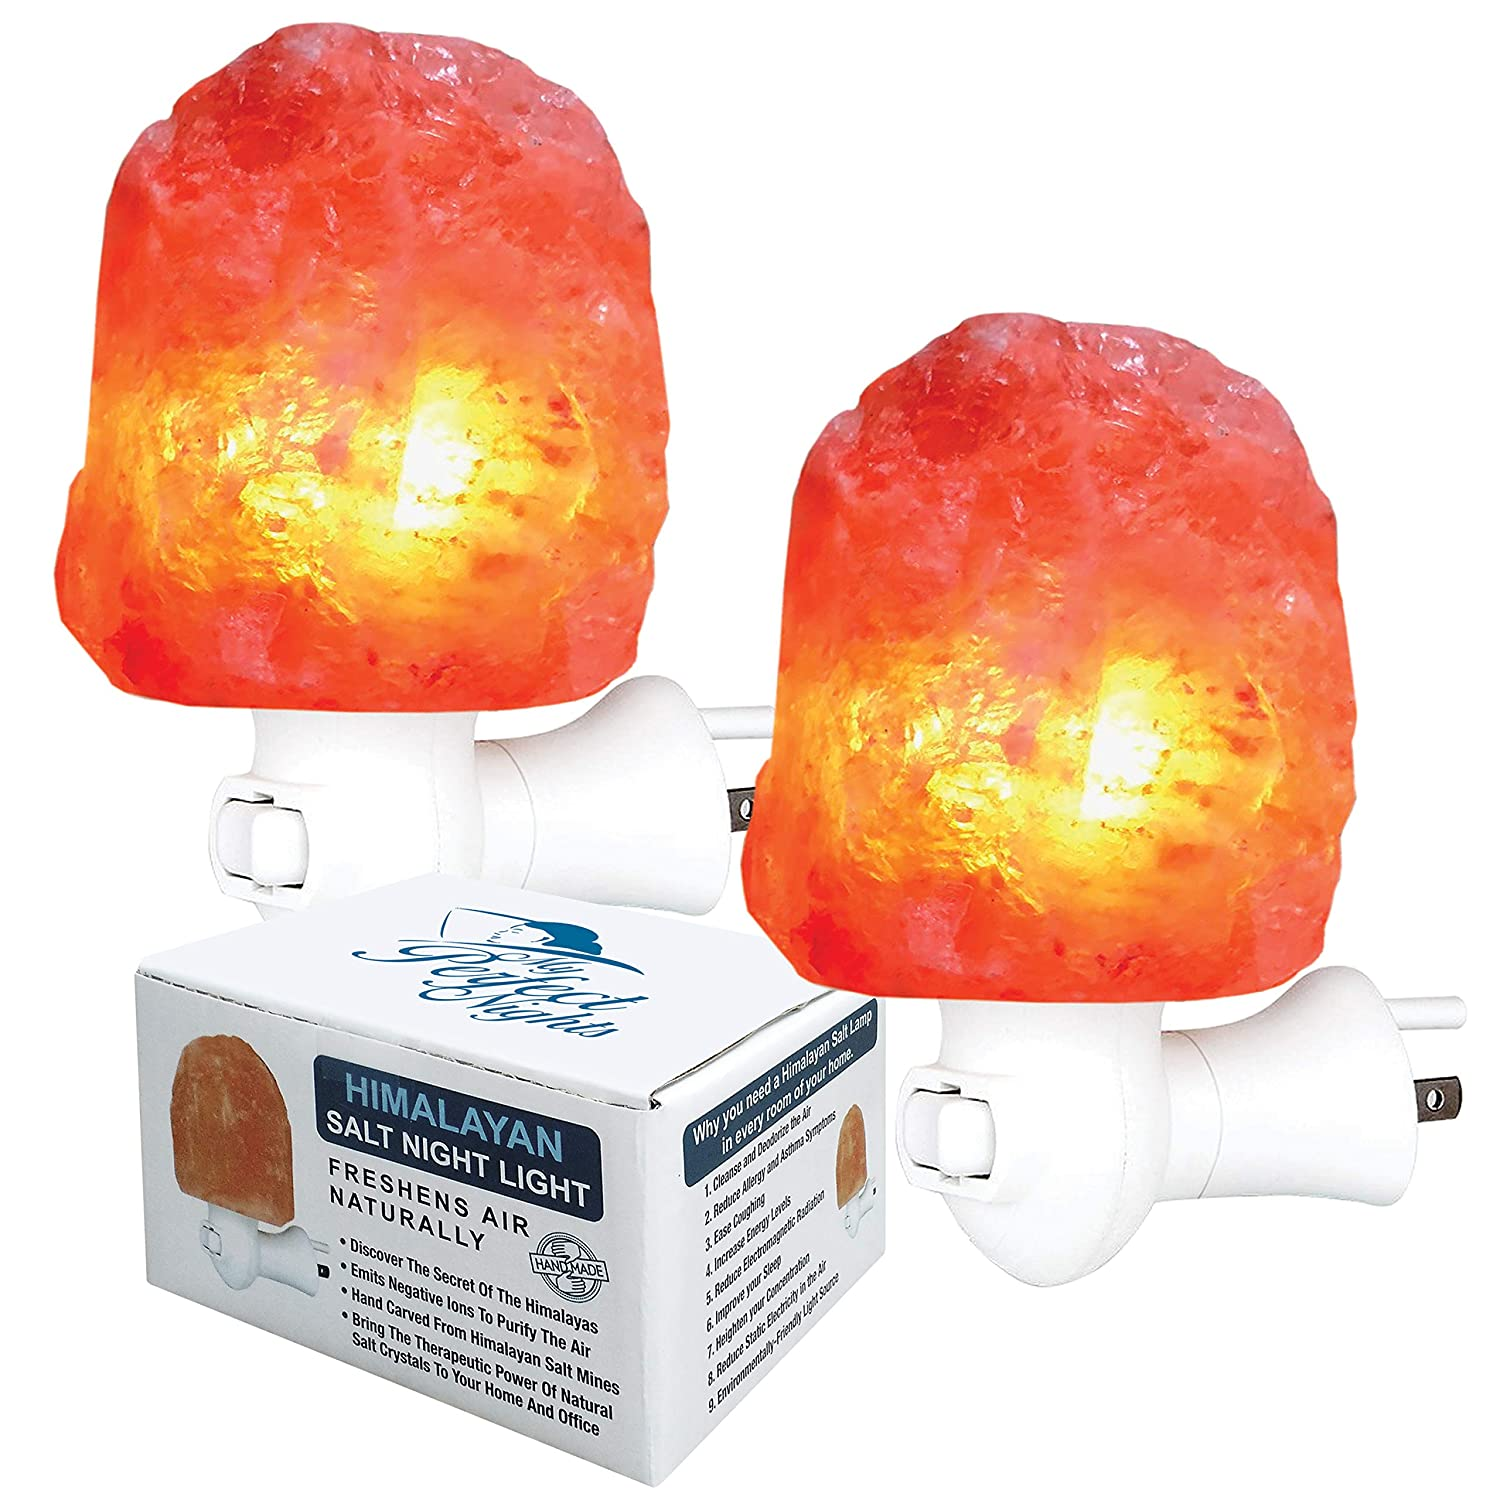 Himalayan Salt Lamp Night Light from Pakistan Natural Hand Carved 100% Pure Authentic Ionic Pink Salt Crystals use in Bedroom Family Room Hallway Office by My Perfect Nights 2 Pack